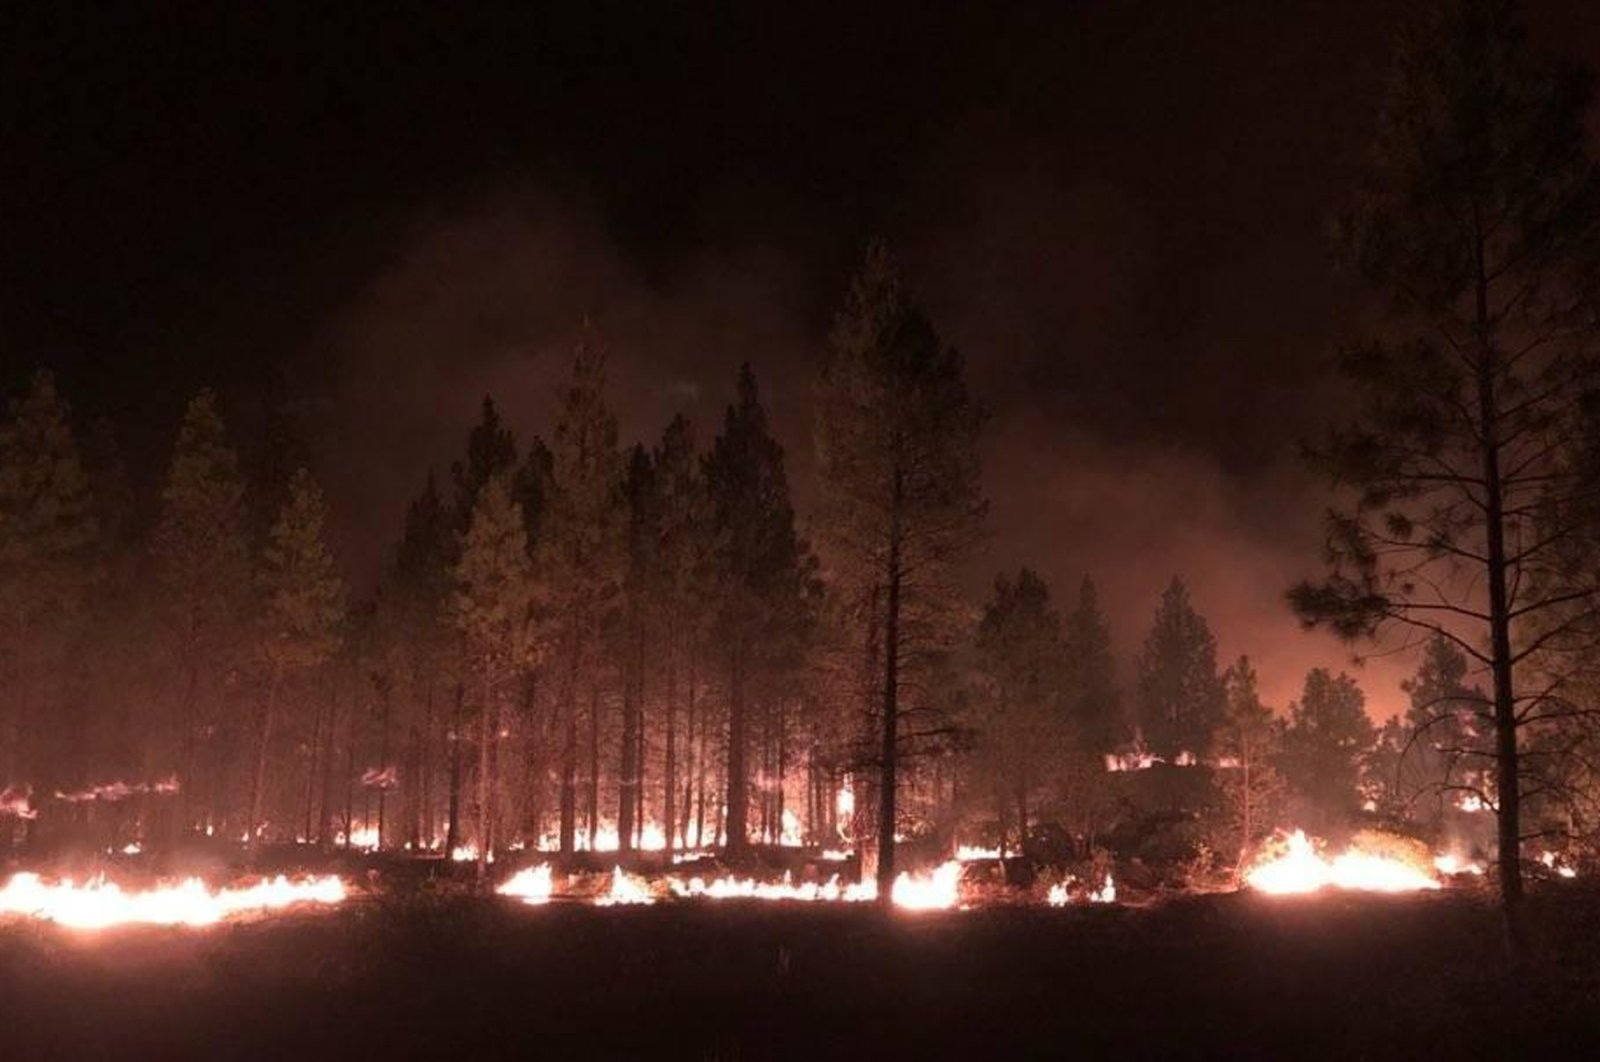 In this photo provided by the Bootleg Fire Incident Command, the Bootleg Fire burns at night near Highway 34 in southern Oregon, July 15, 2021. (AP Photo)